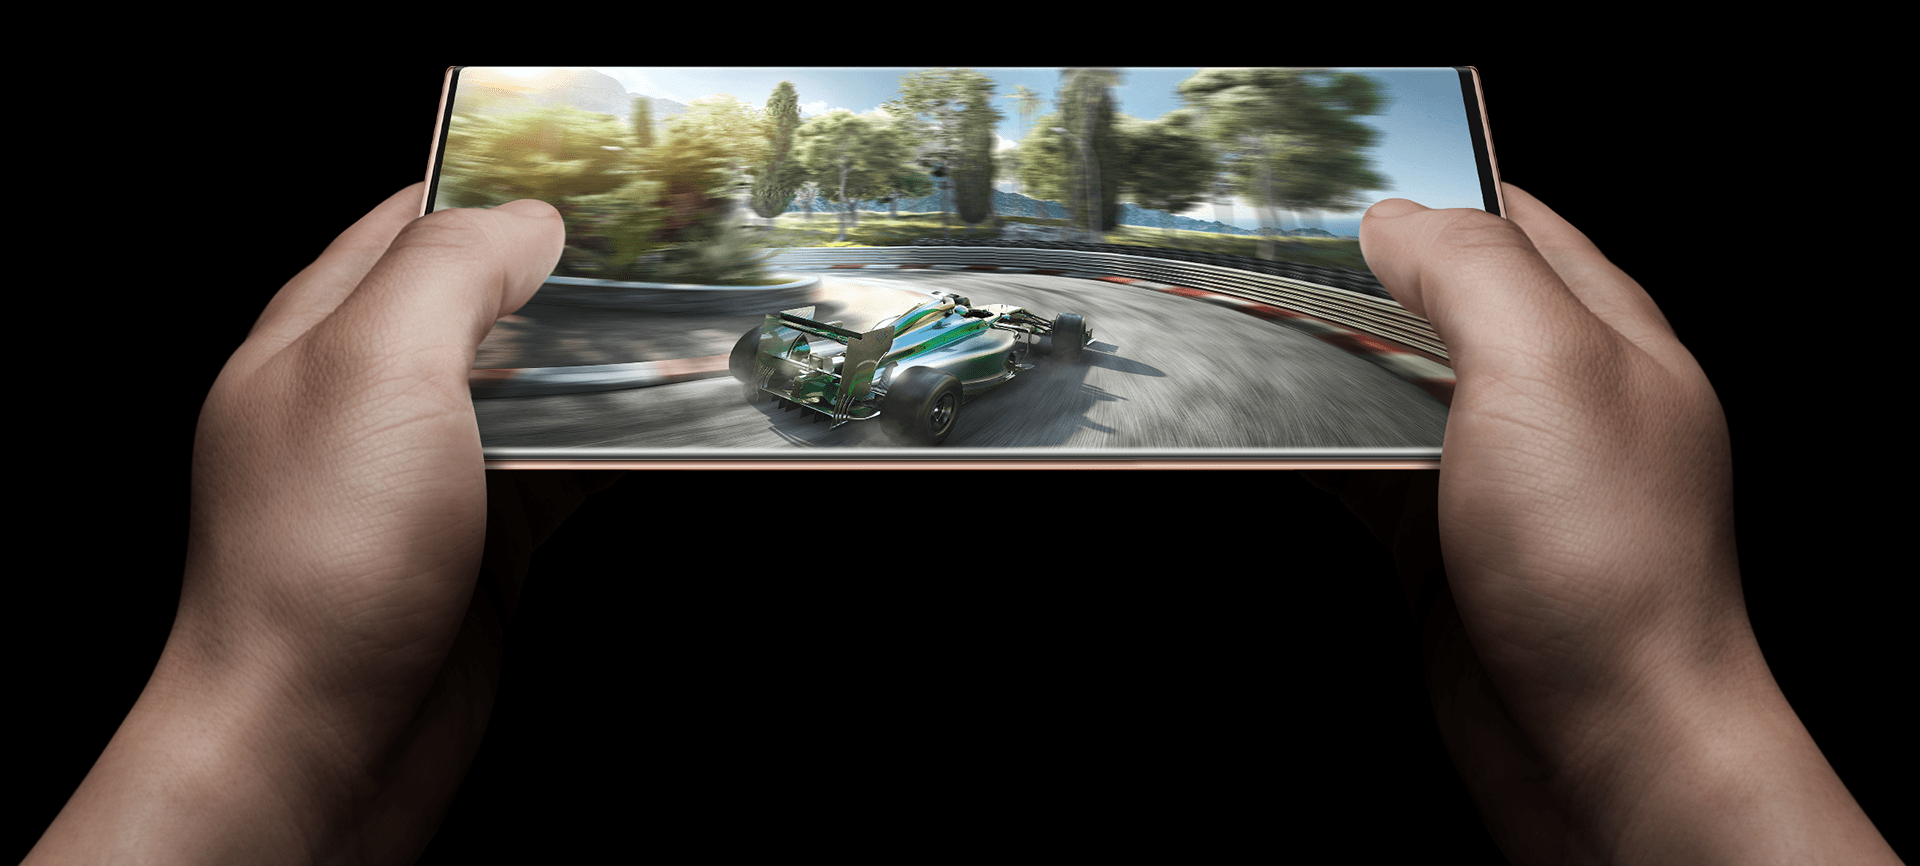 Revolutionary gaming capability with the Samsung Note20 series. A pair of hands, using a Mystic bronze Note20 device in landscape view, playing a high resolution and performance demanding car racing game. Displaying the powerful capabilities of the device.